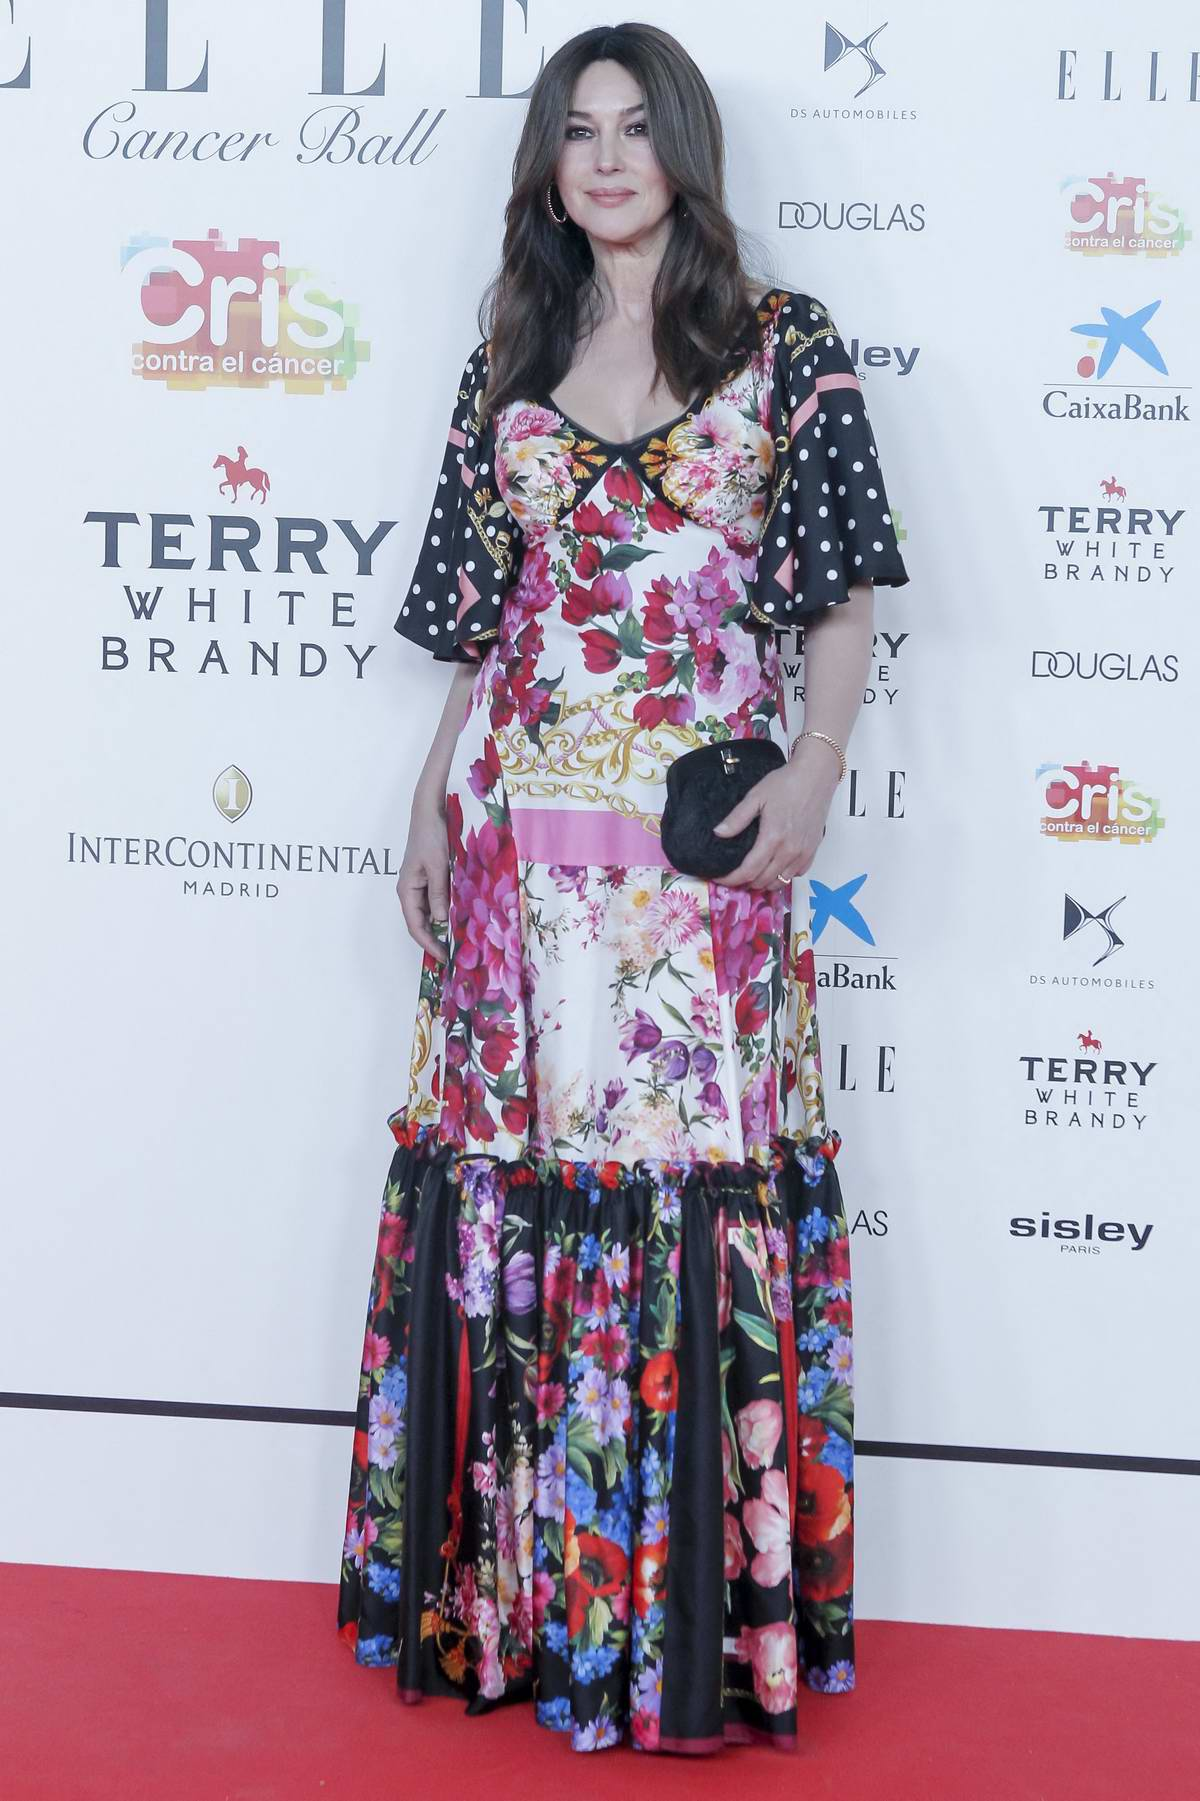 Monica Bellucci attends Solidarity gala dinner for CRIS Foundation against Cancer at Intercontinental Hotel in Madrid, Spain